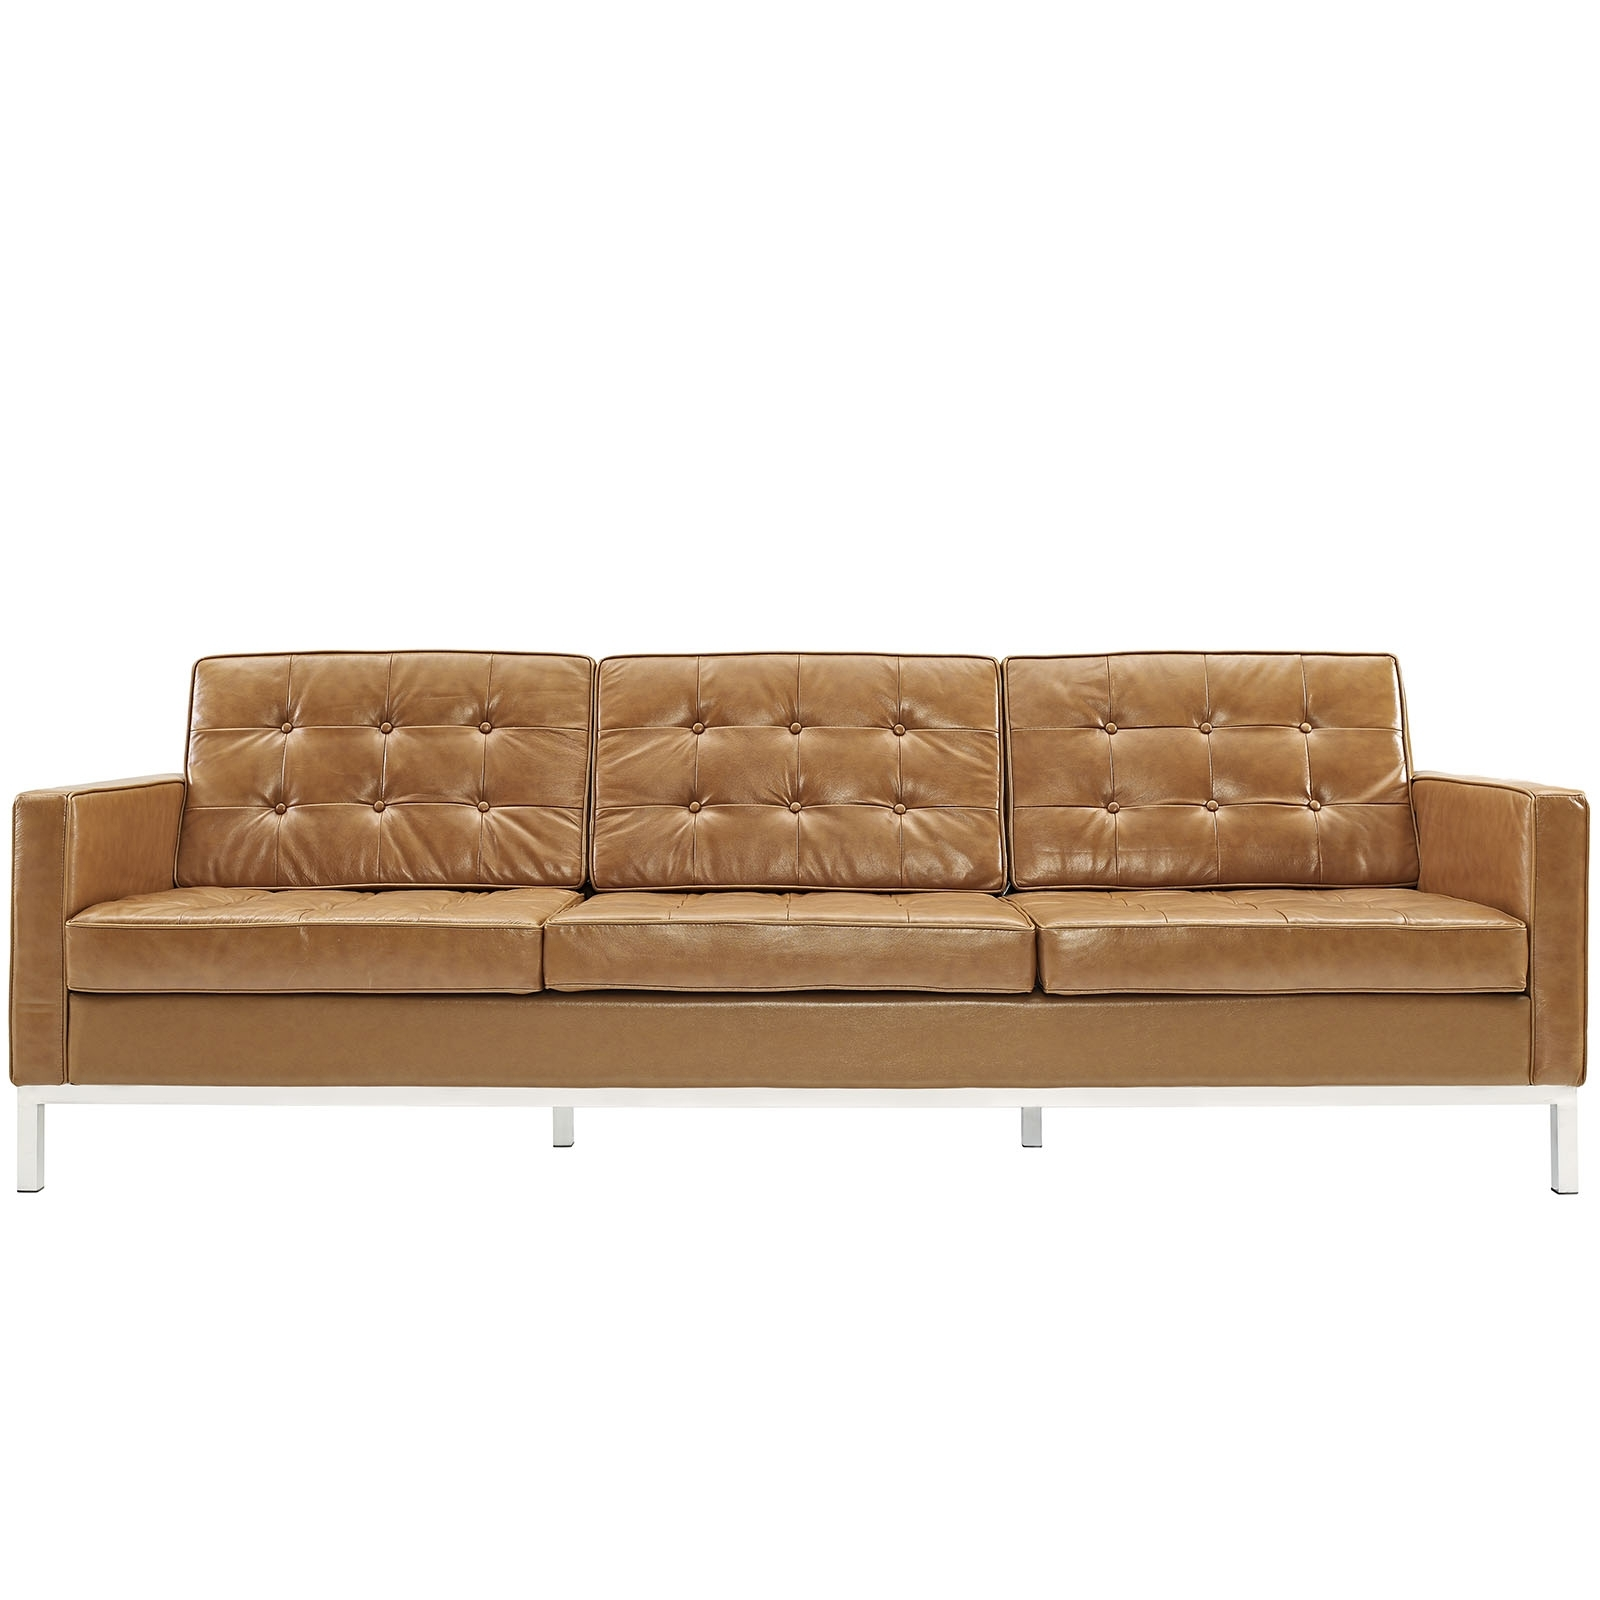 Florence Knoll Style Sofa Couch – Leather Inside Widely Used Florence Knoll Leather Sofas (View 3 of 15)